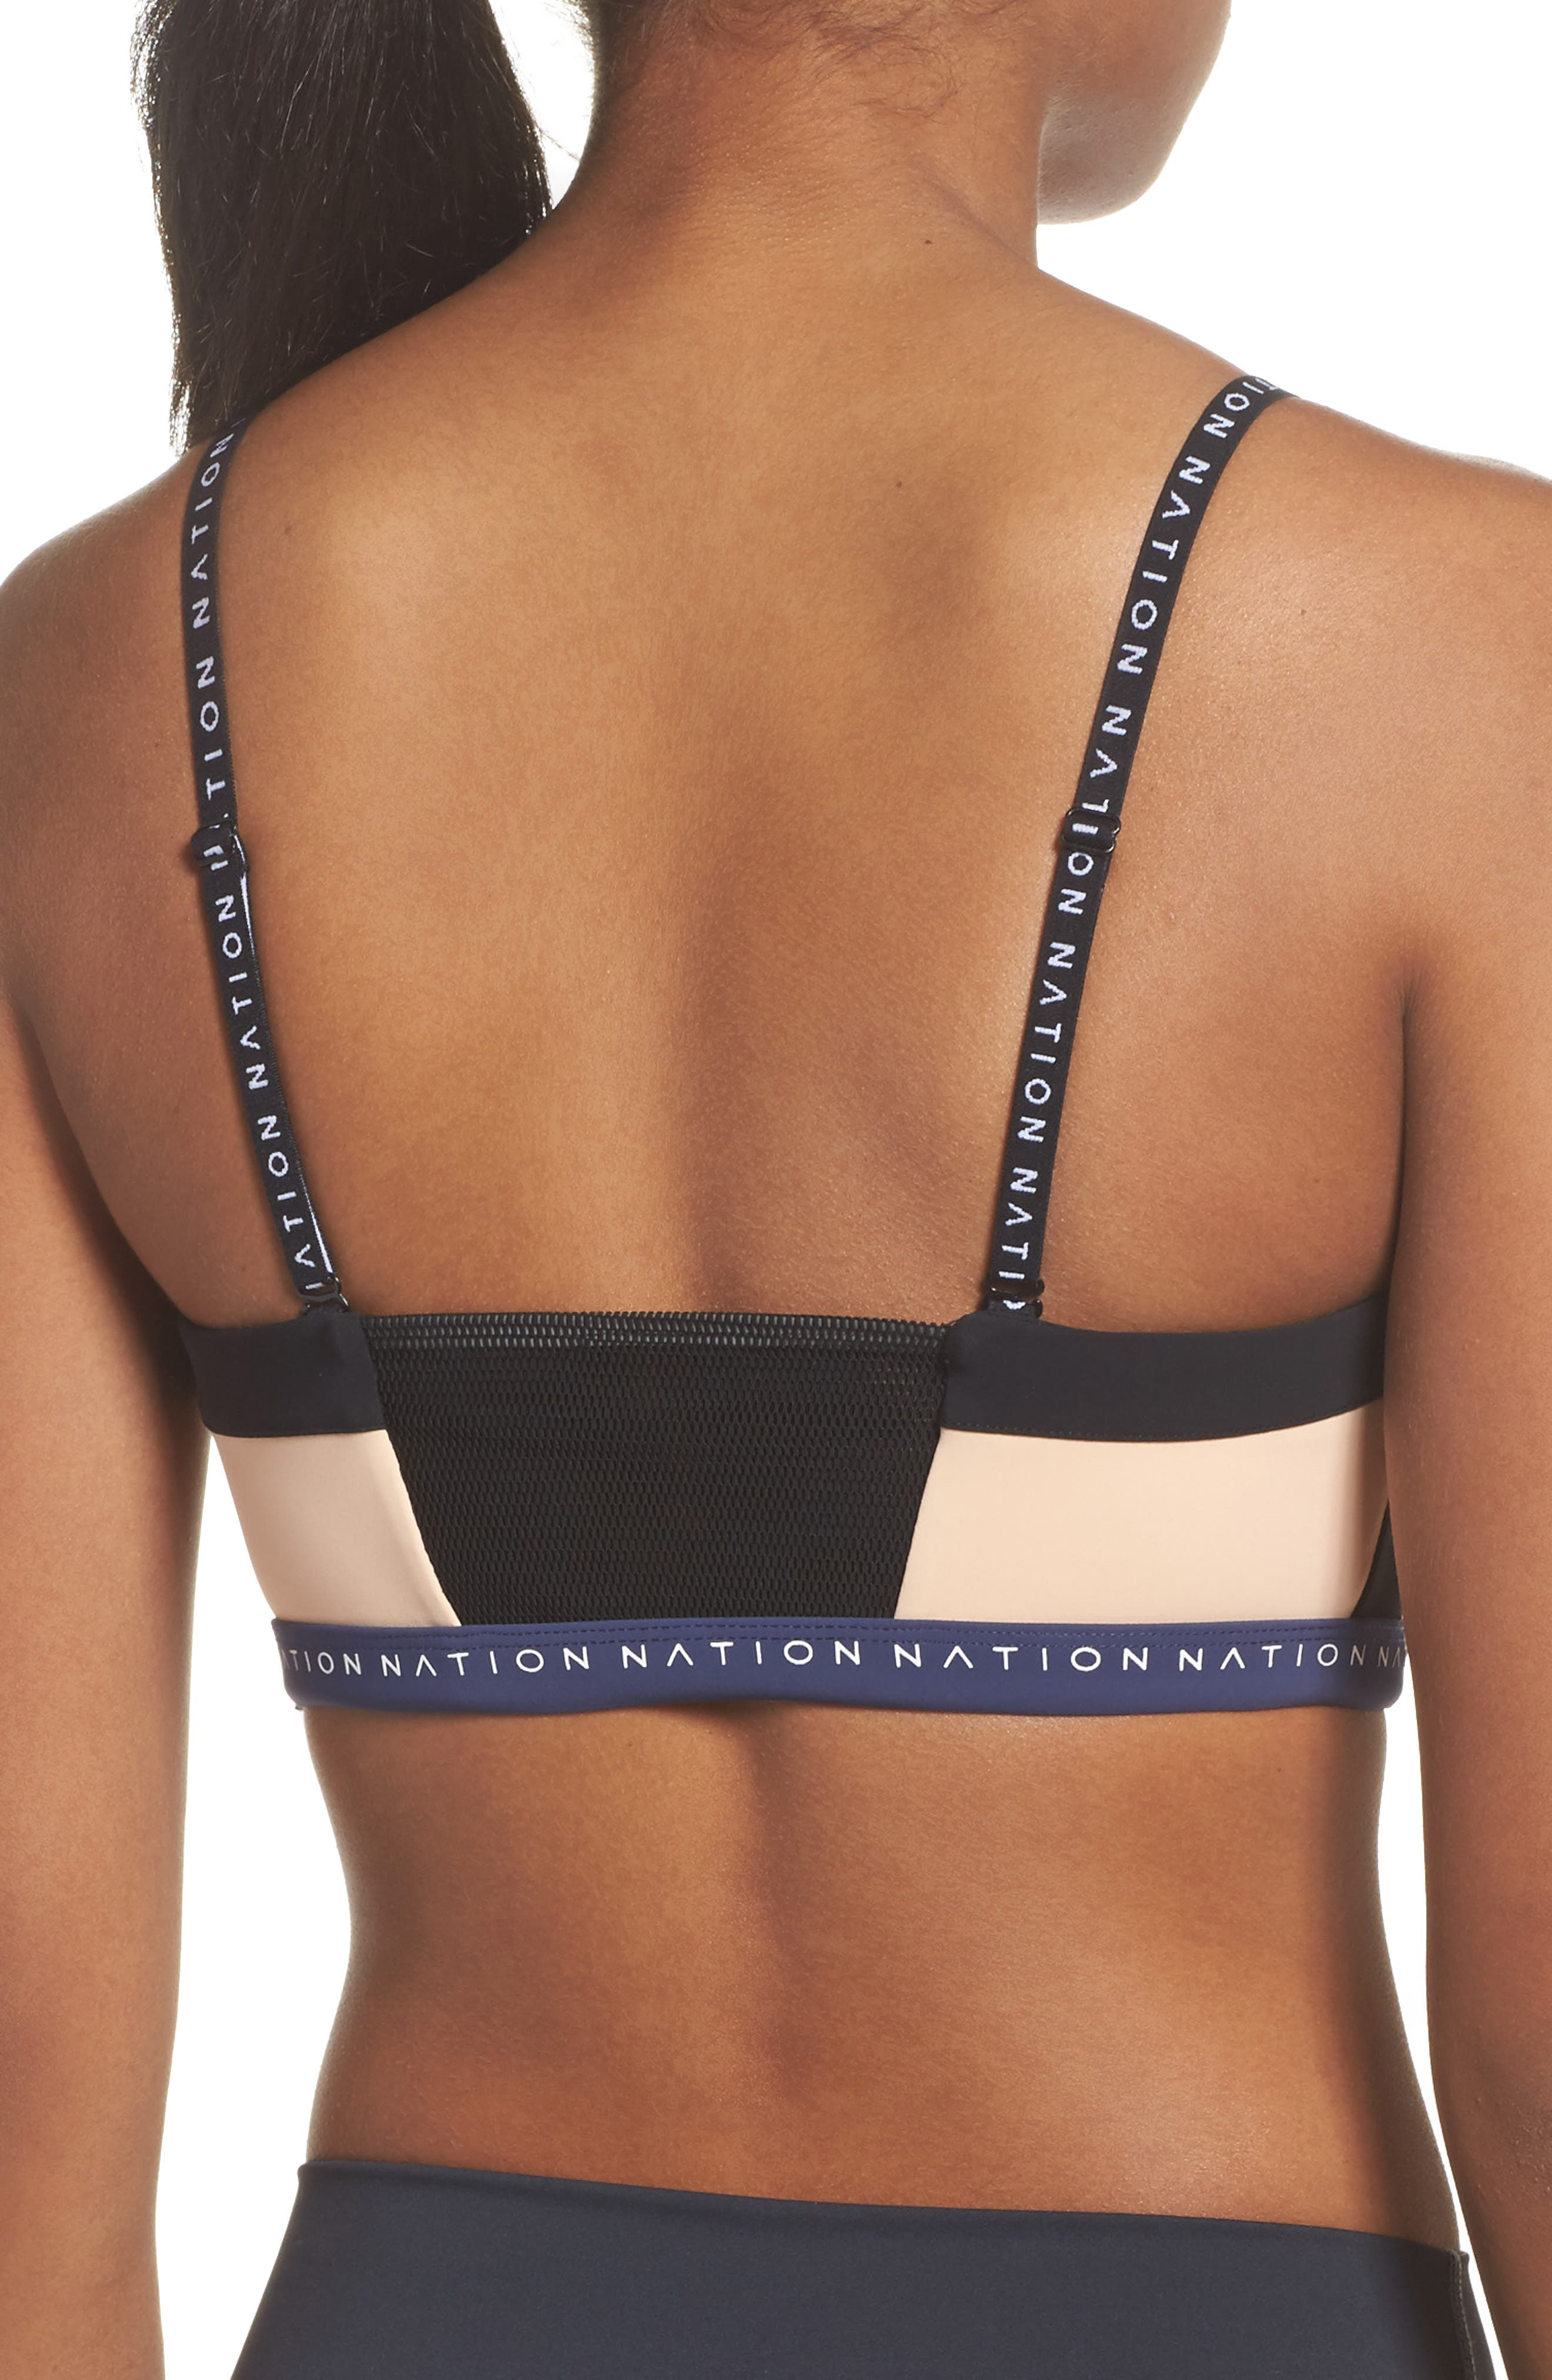 Field of Dreams Sports Bra,                             Alternate thumbnail 3, color,                             001